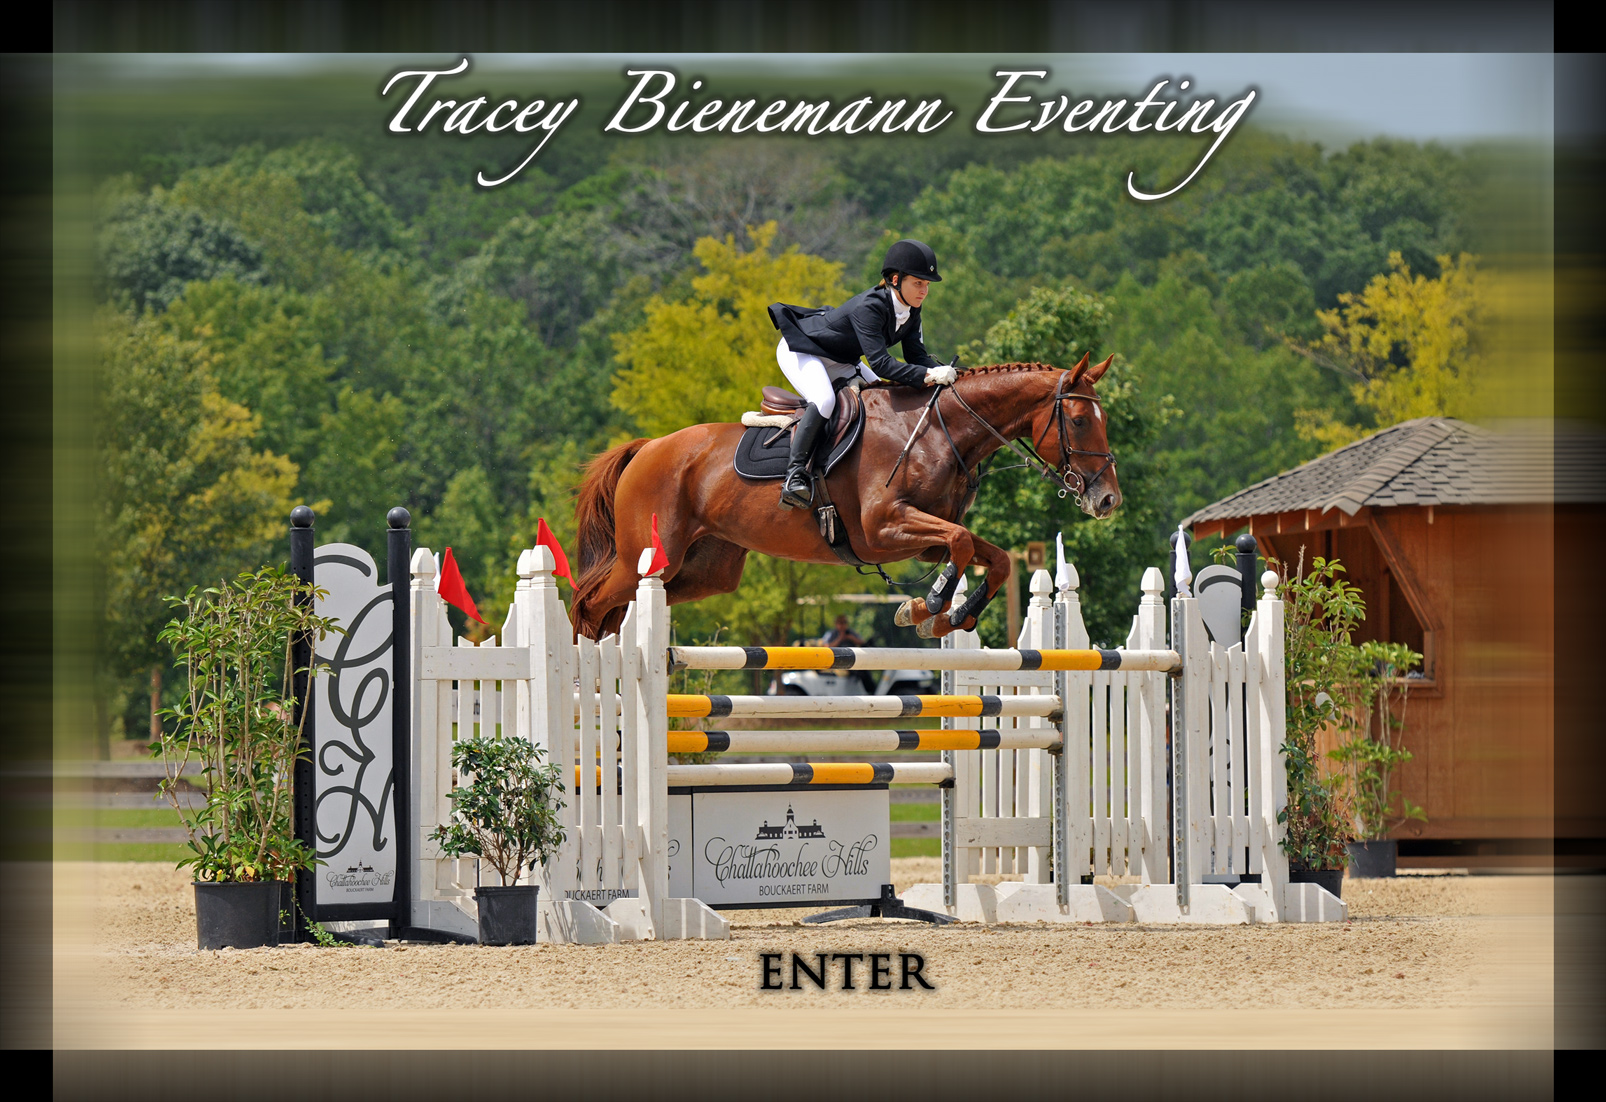 Enter Tracey Bienemann Eventing